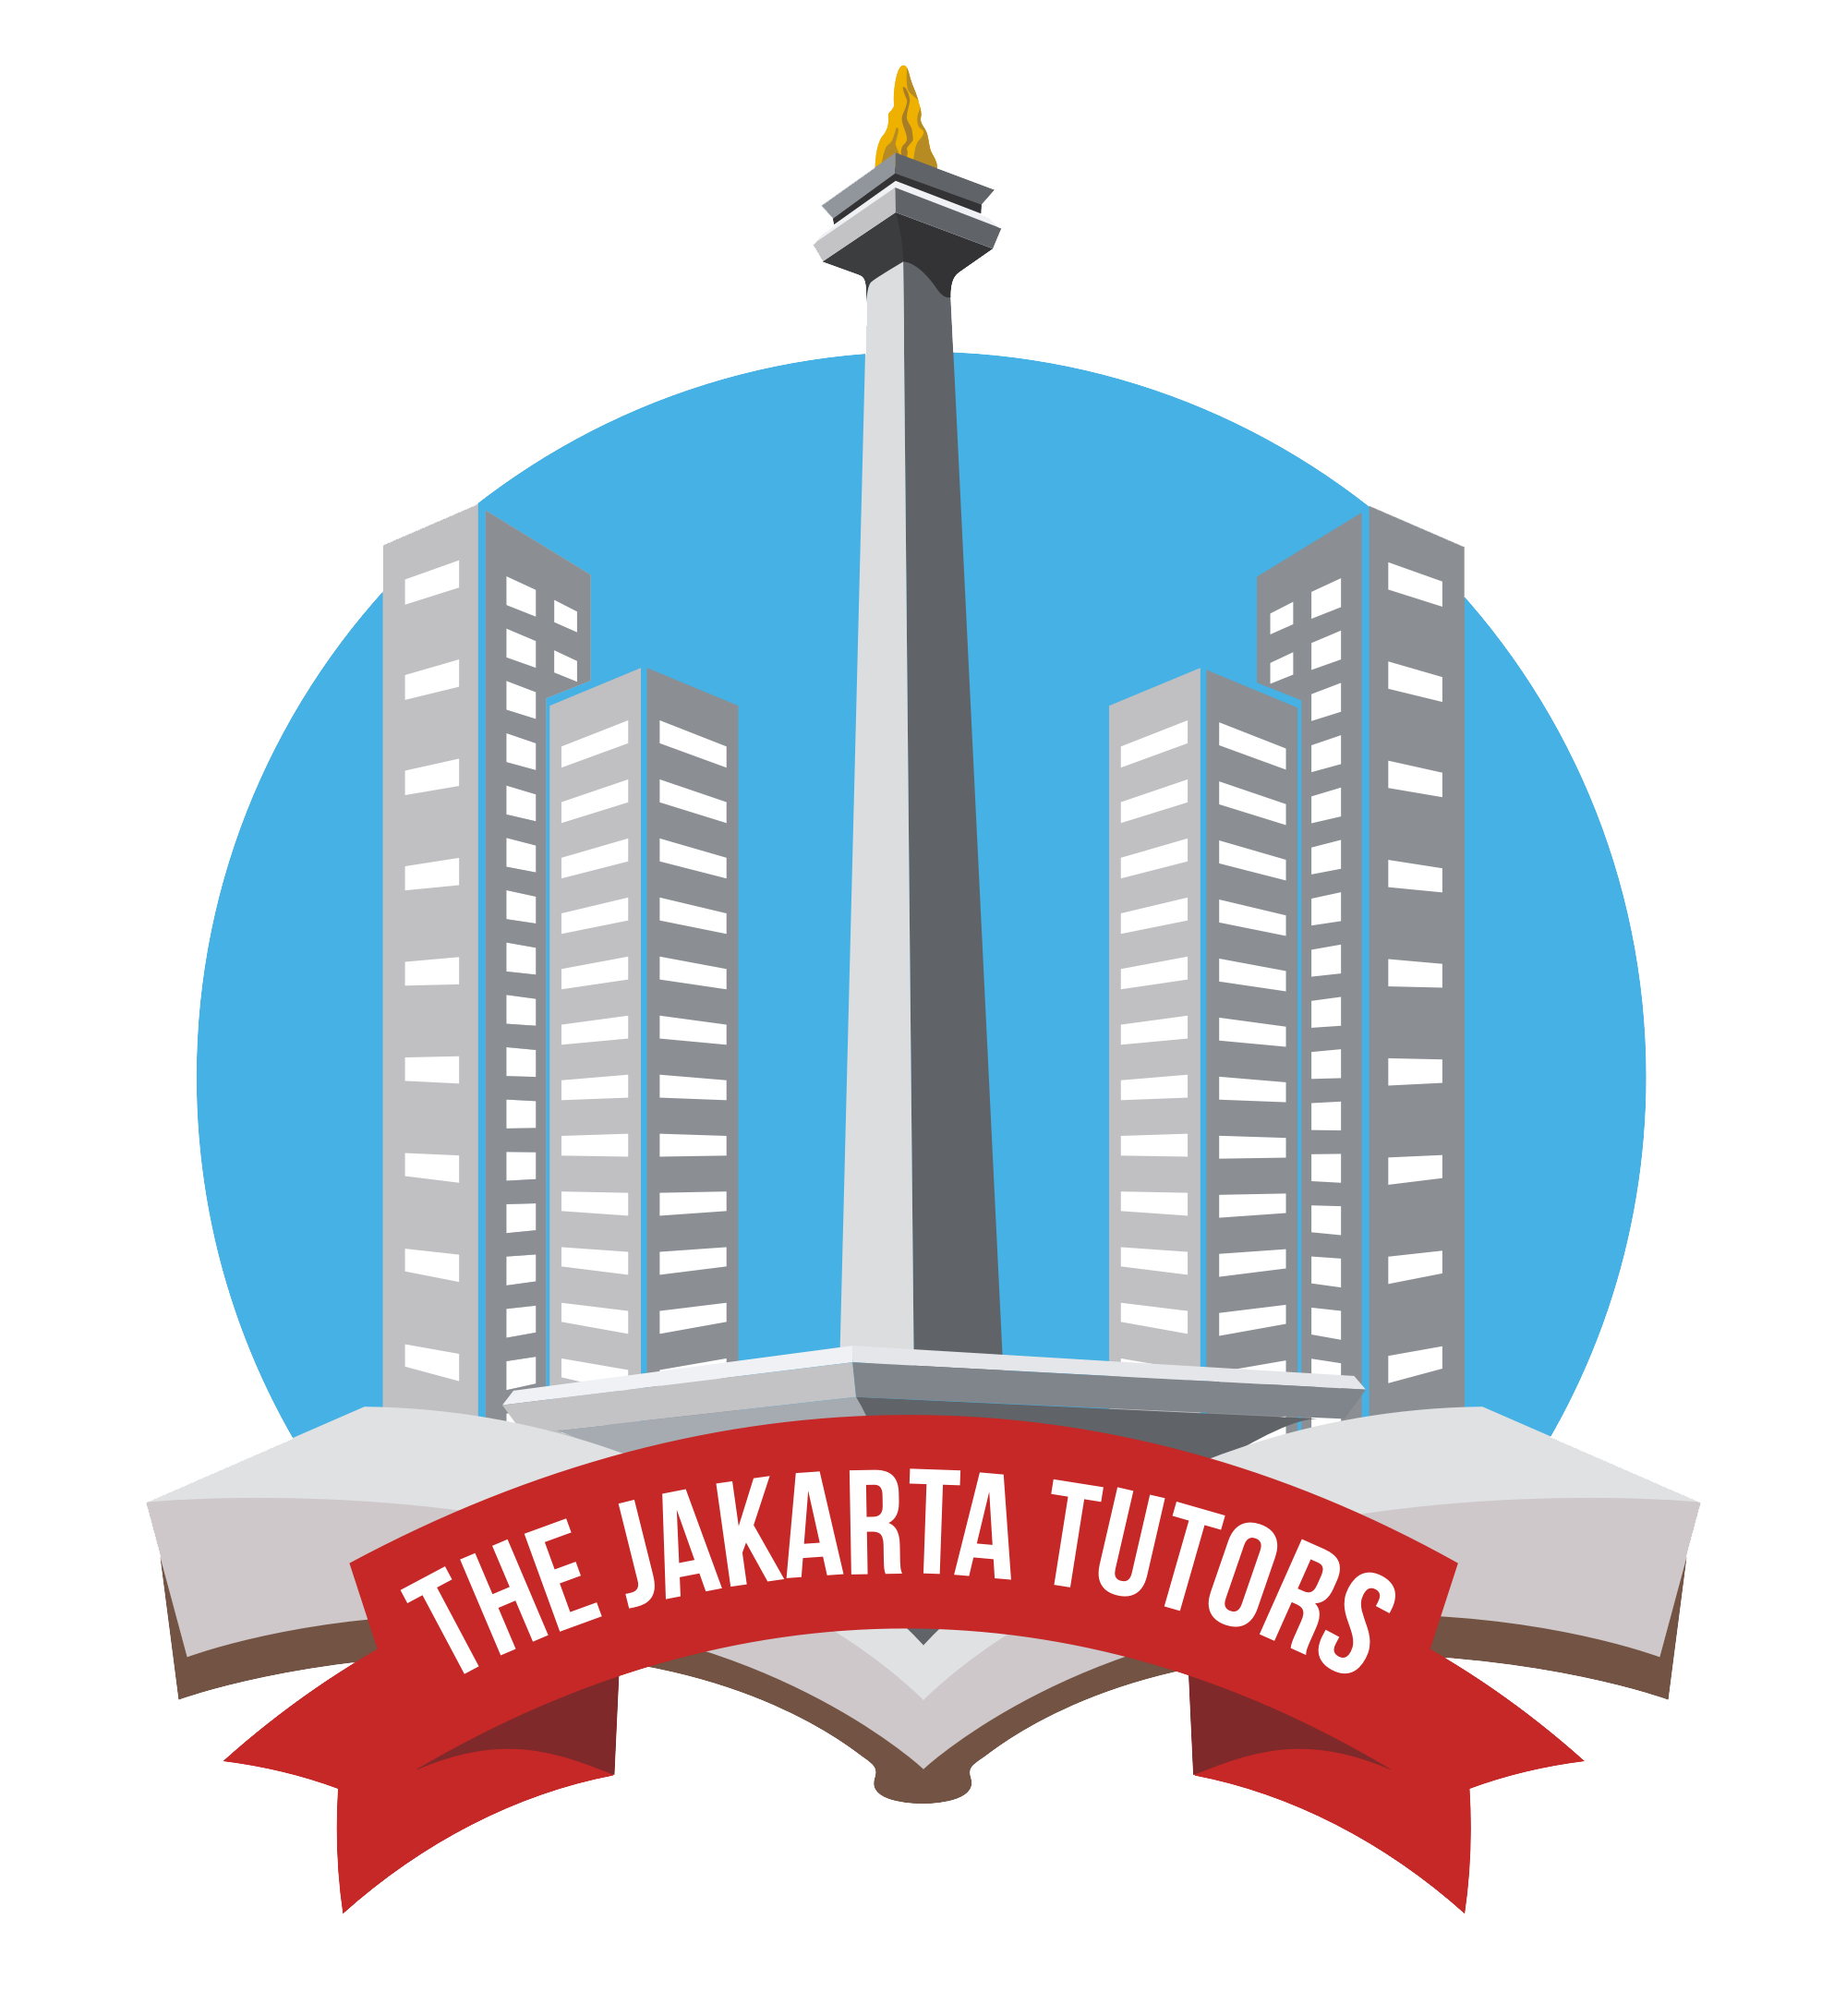 English - The Jakarta Tutors